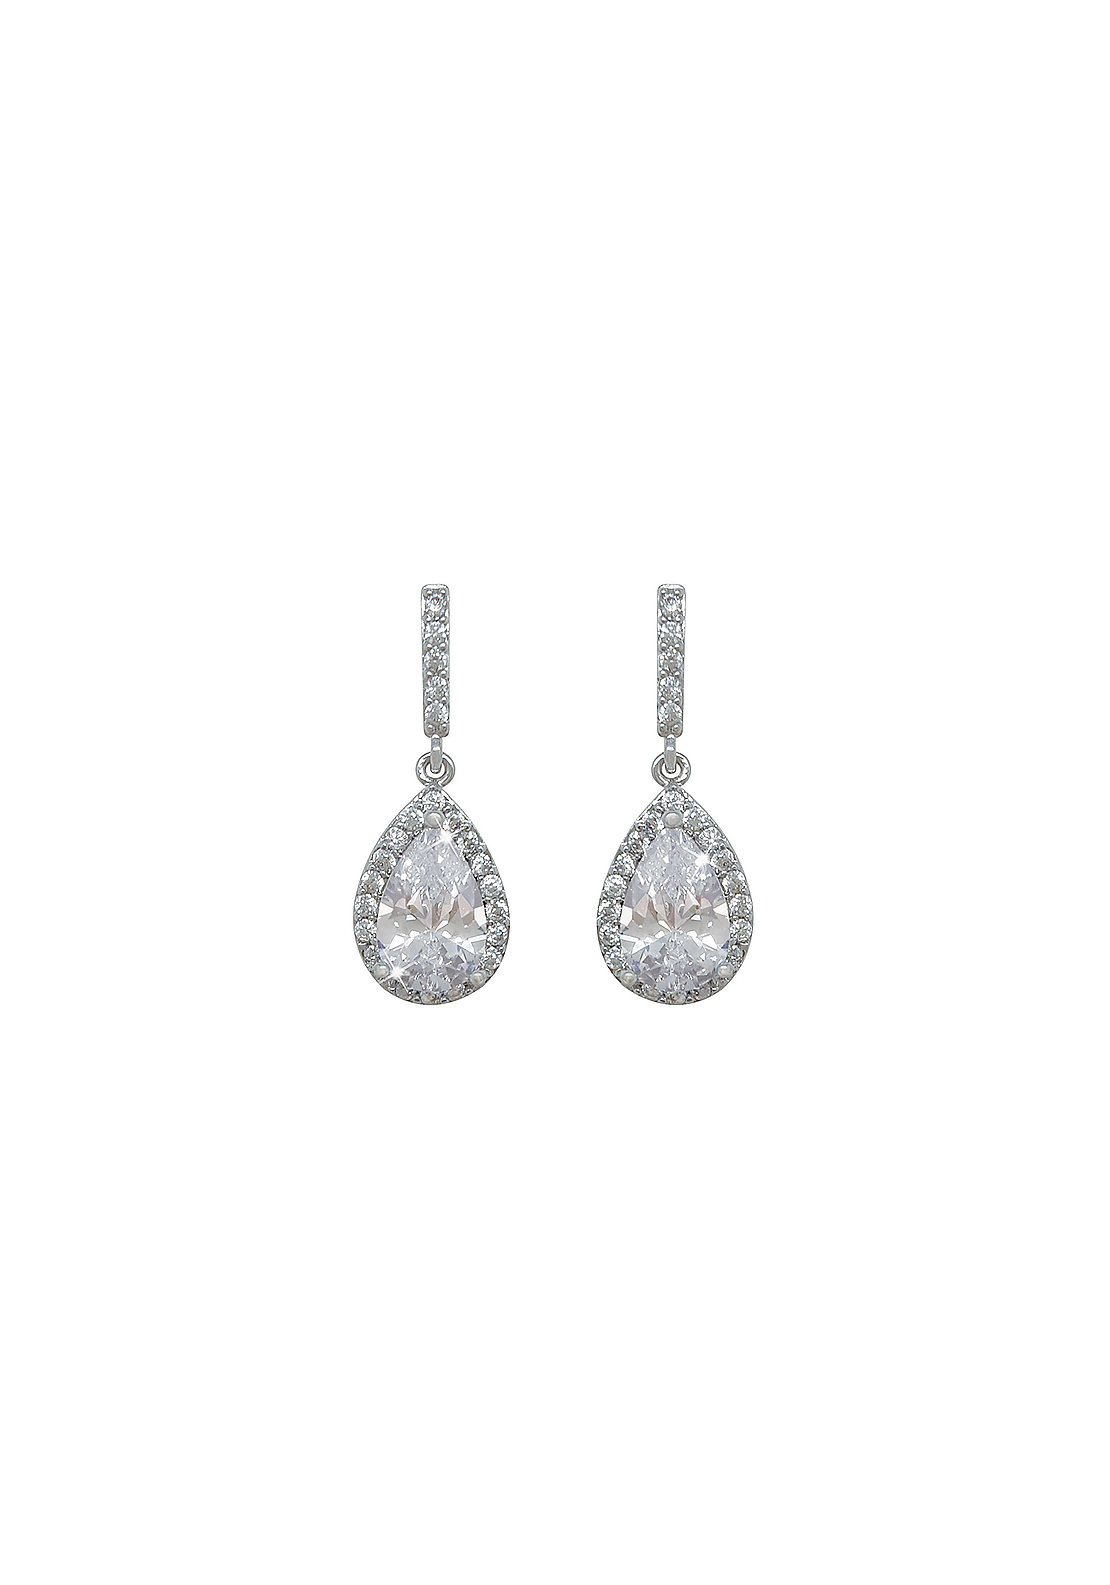 Tipperary Crystal Pear Shaped Drop Earrings, Silver